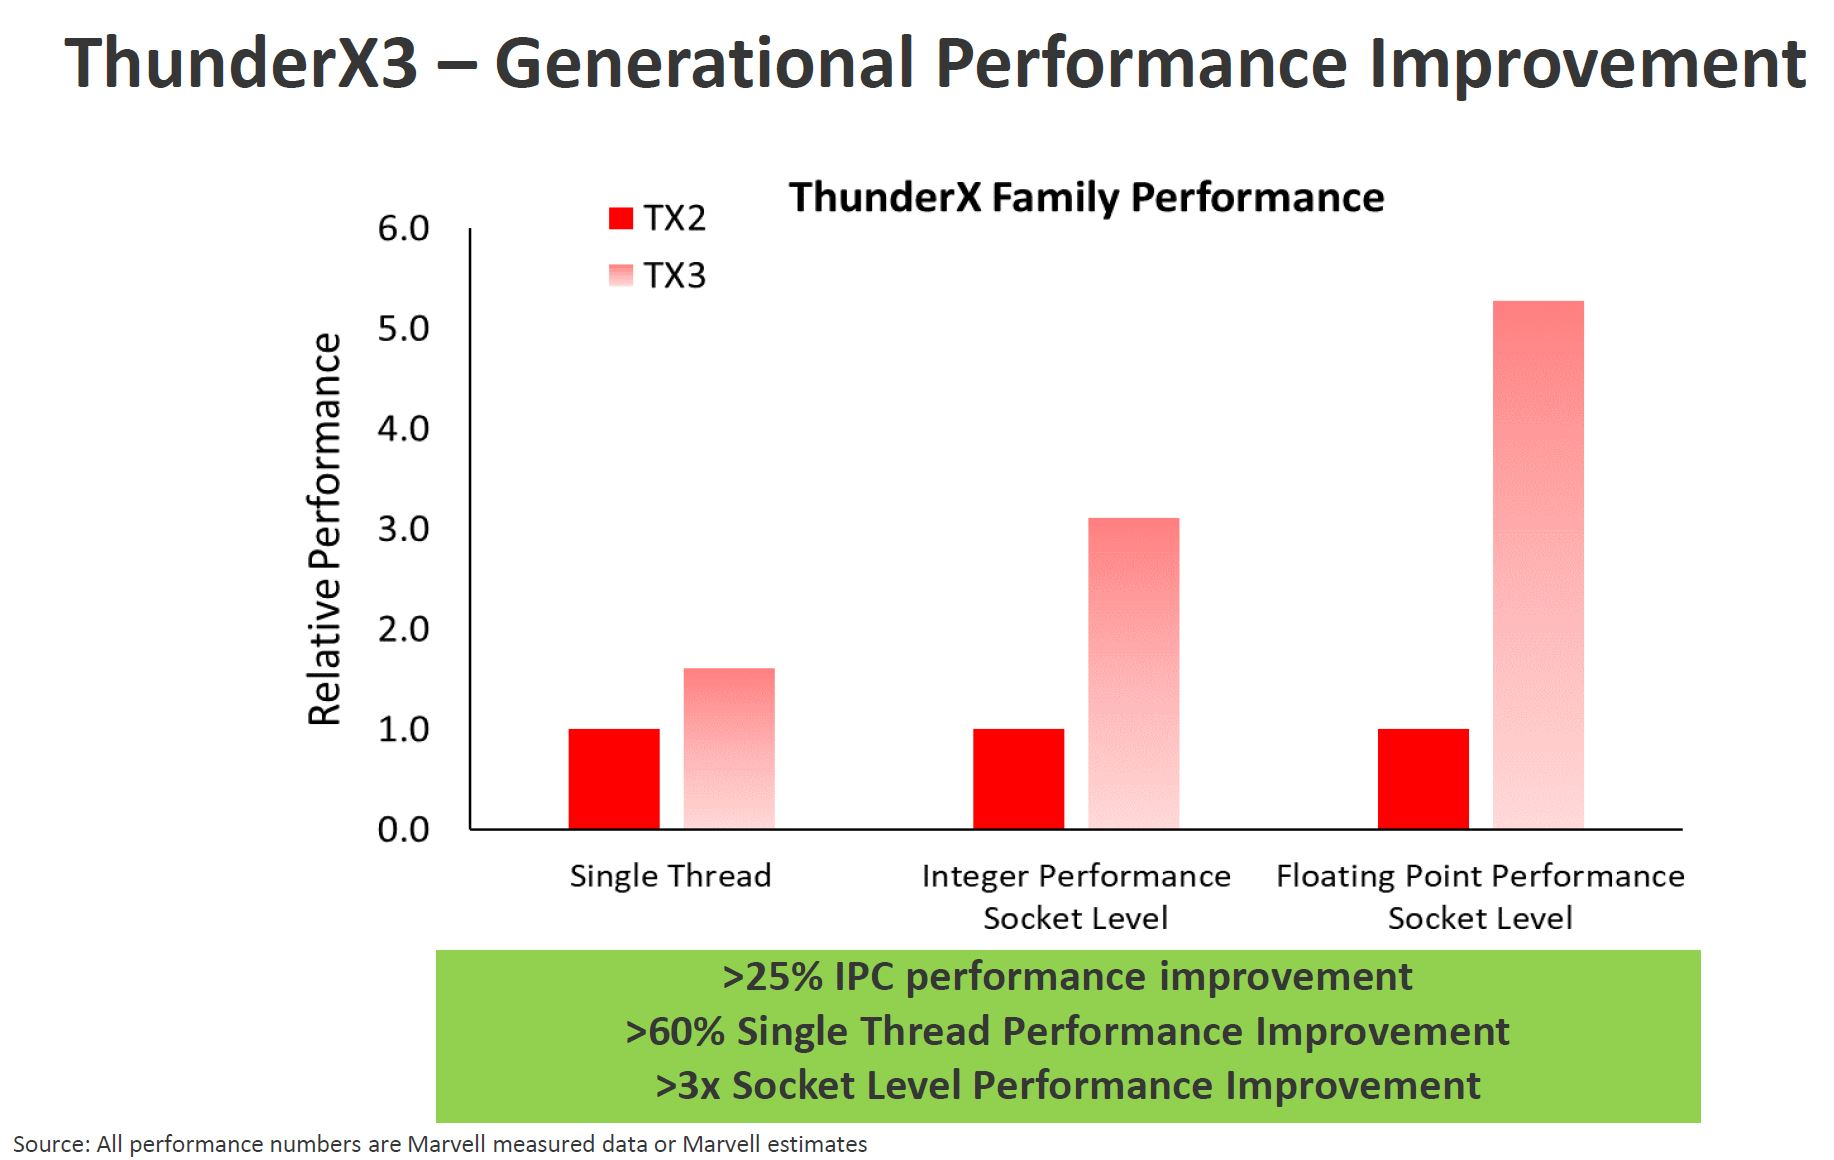 Marvell ThunderX3 Generational Performance Improvement